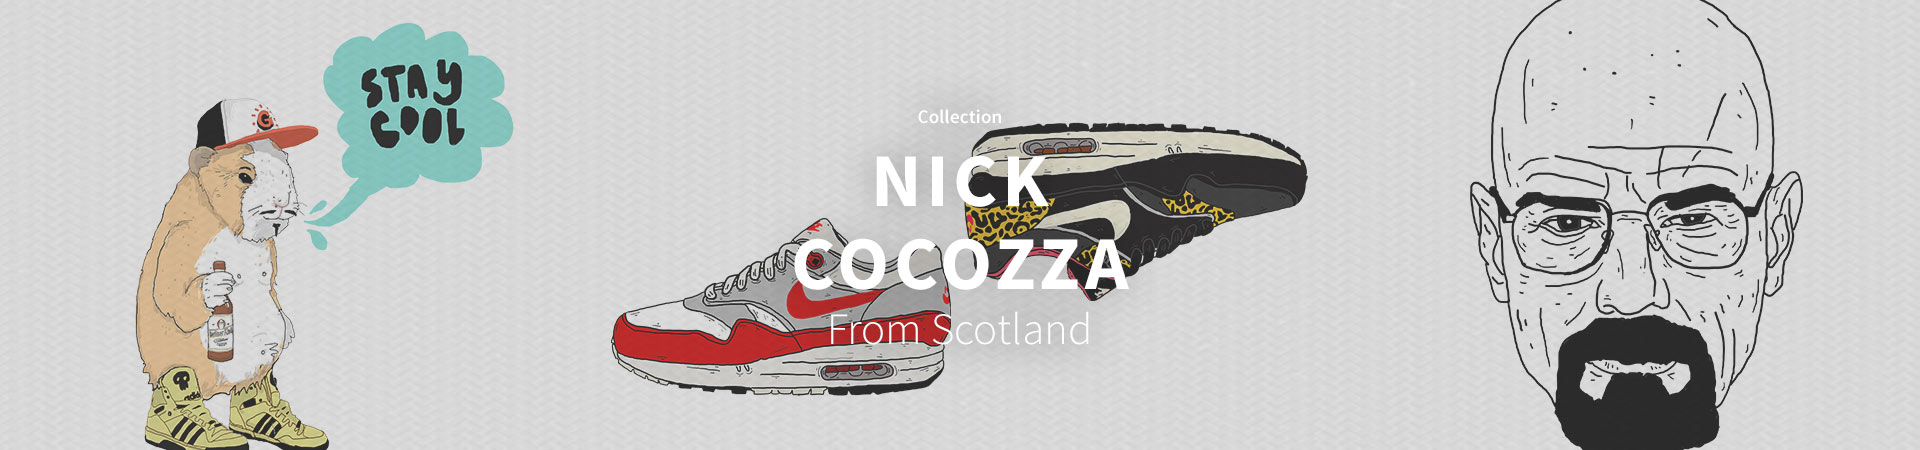 Nick Cocozza